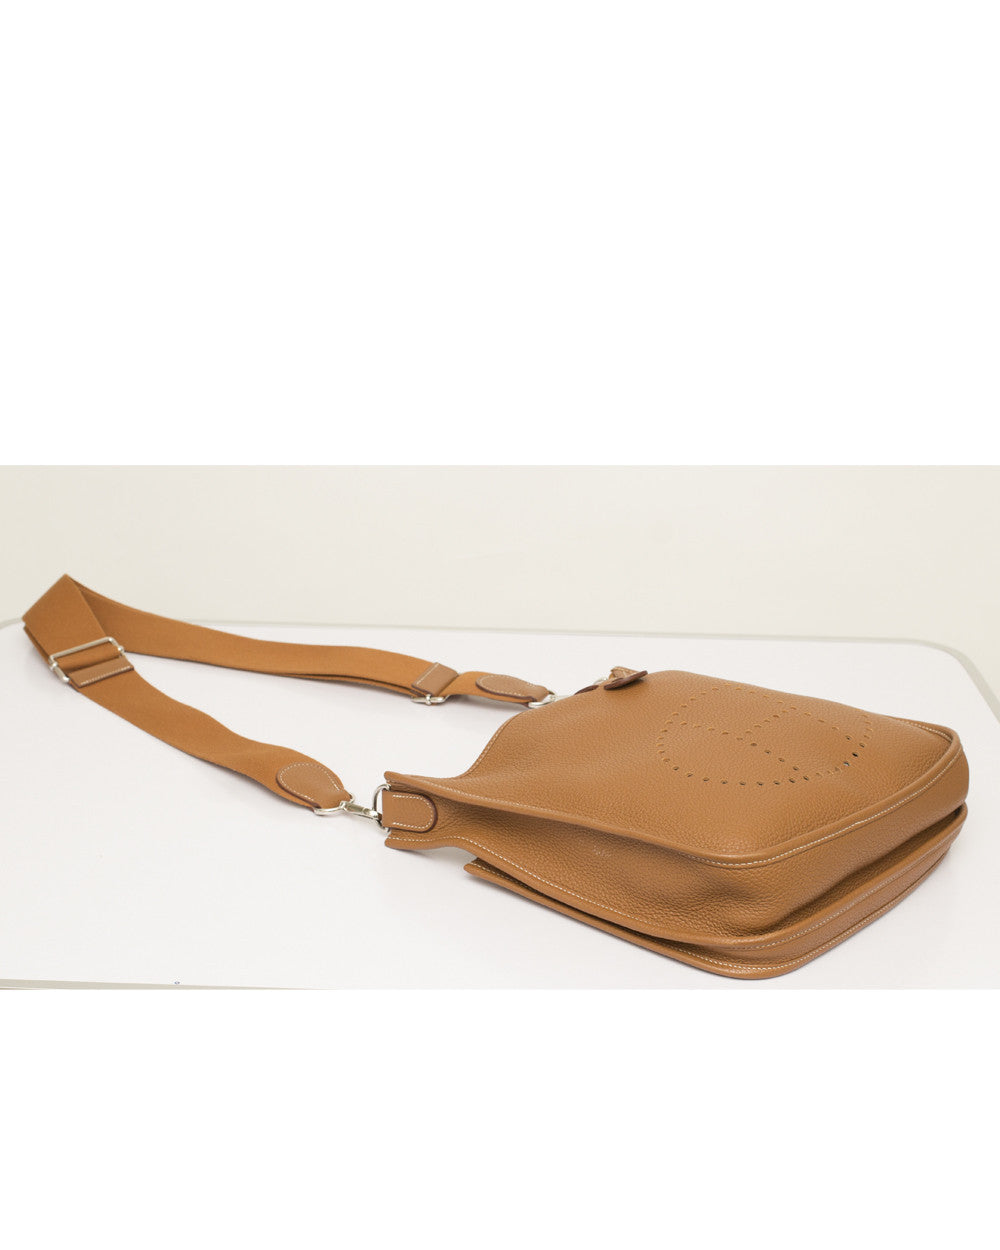 Gold Evelyn III Messenger Bag